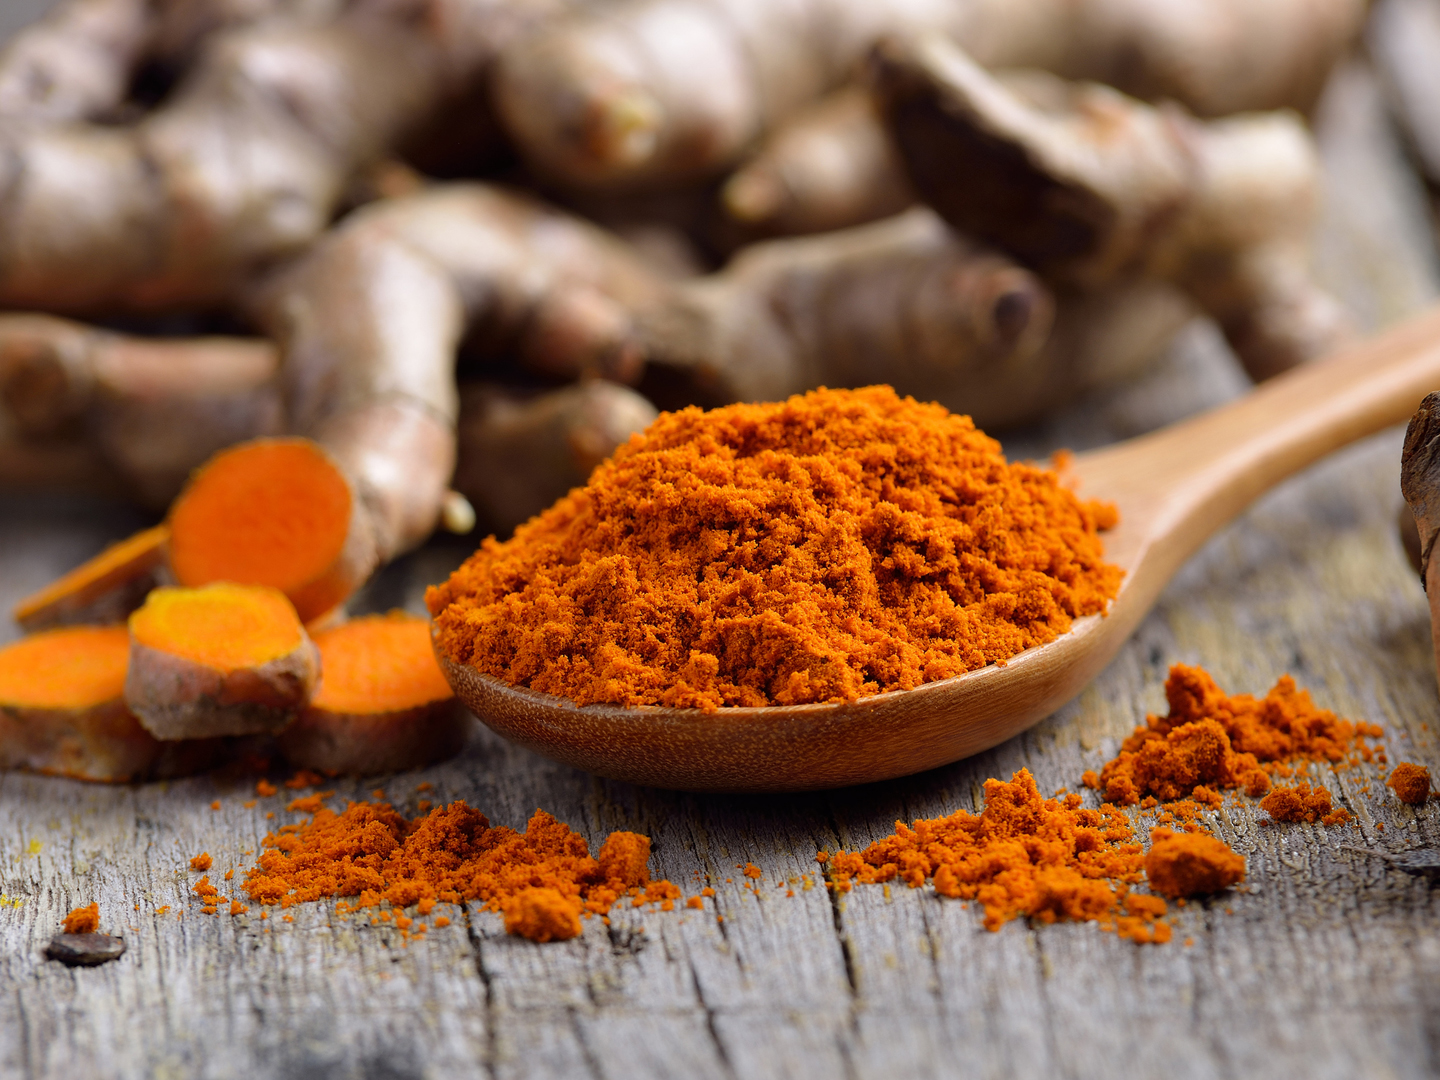 diet-nutrition_nutrition_3-reasons-to-eat-turmeric_1440x1080_475035822